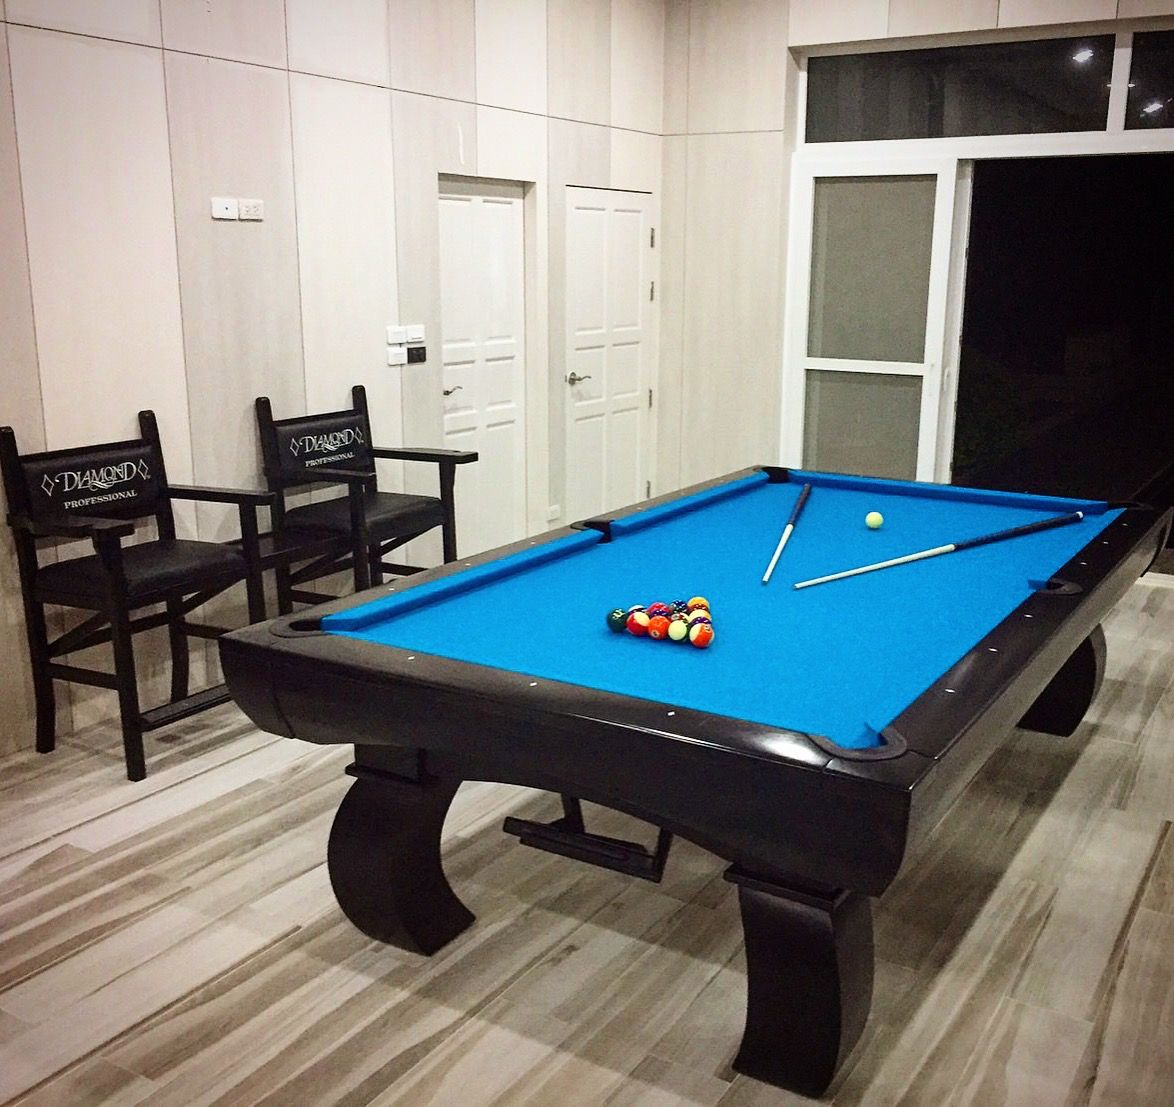 Pin By Thailand Pool Tables On Diamond Pool Tables In Thailand - Diamond professional pool table for sale